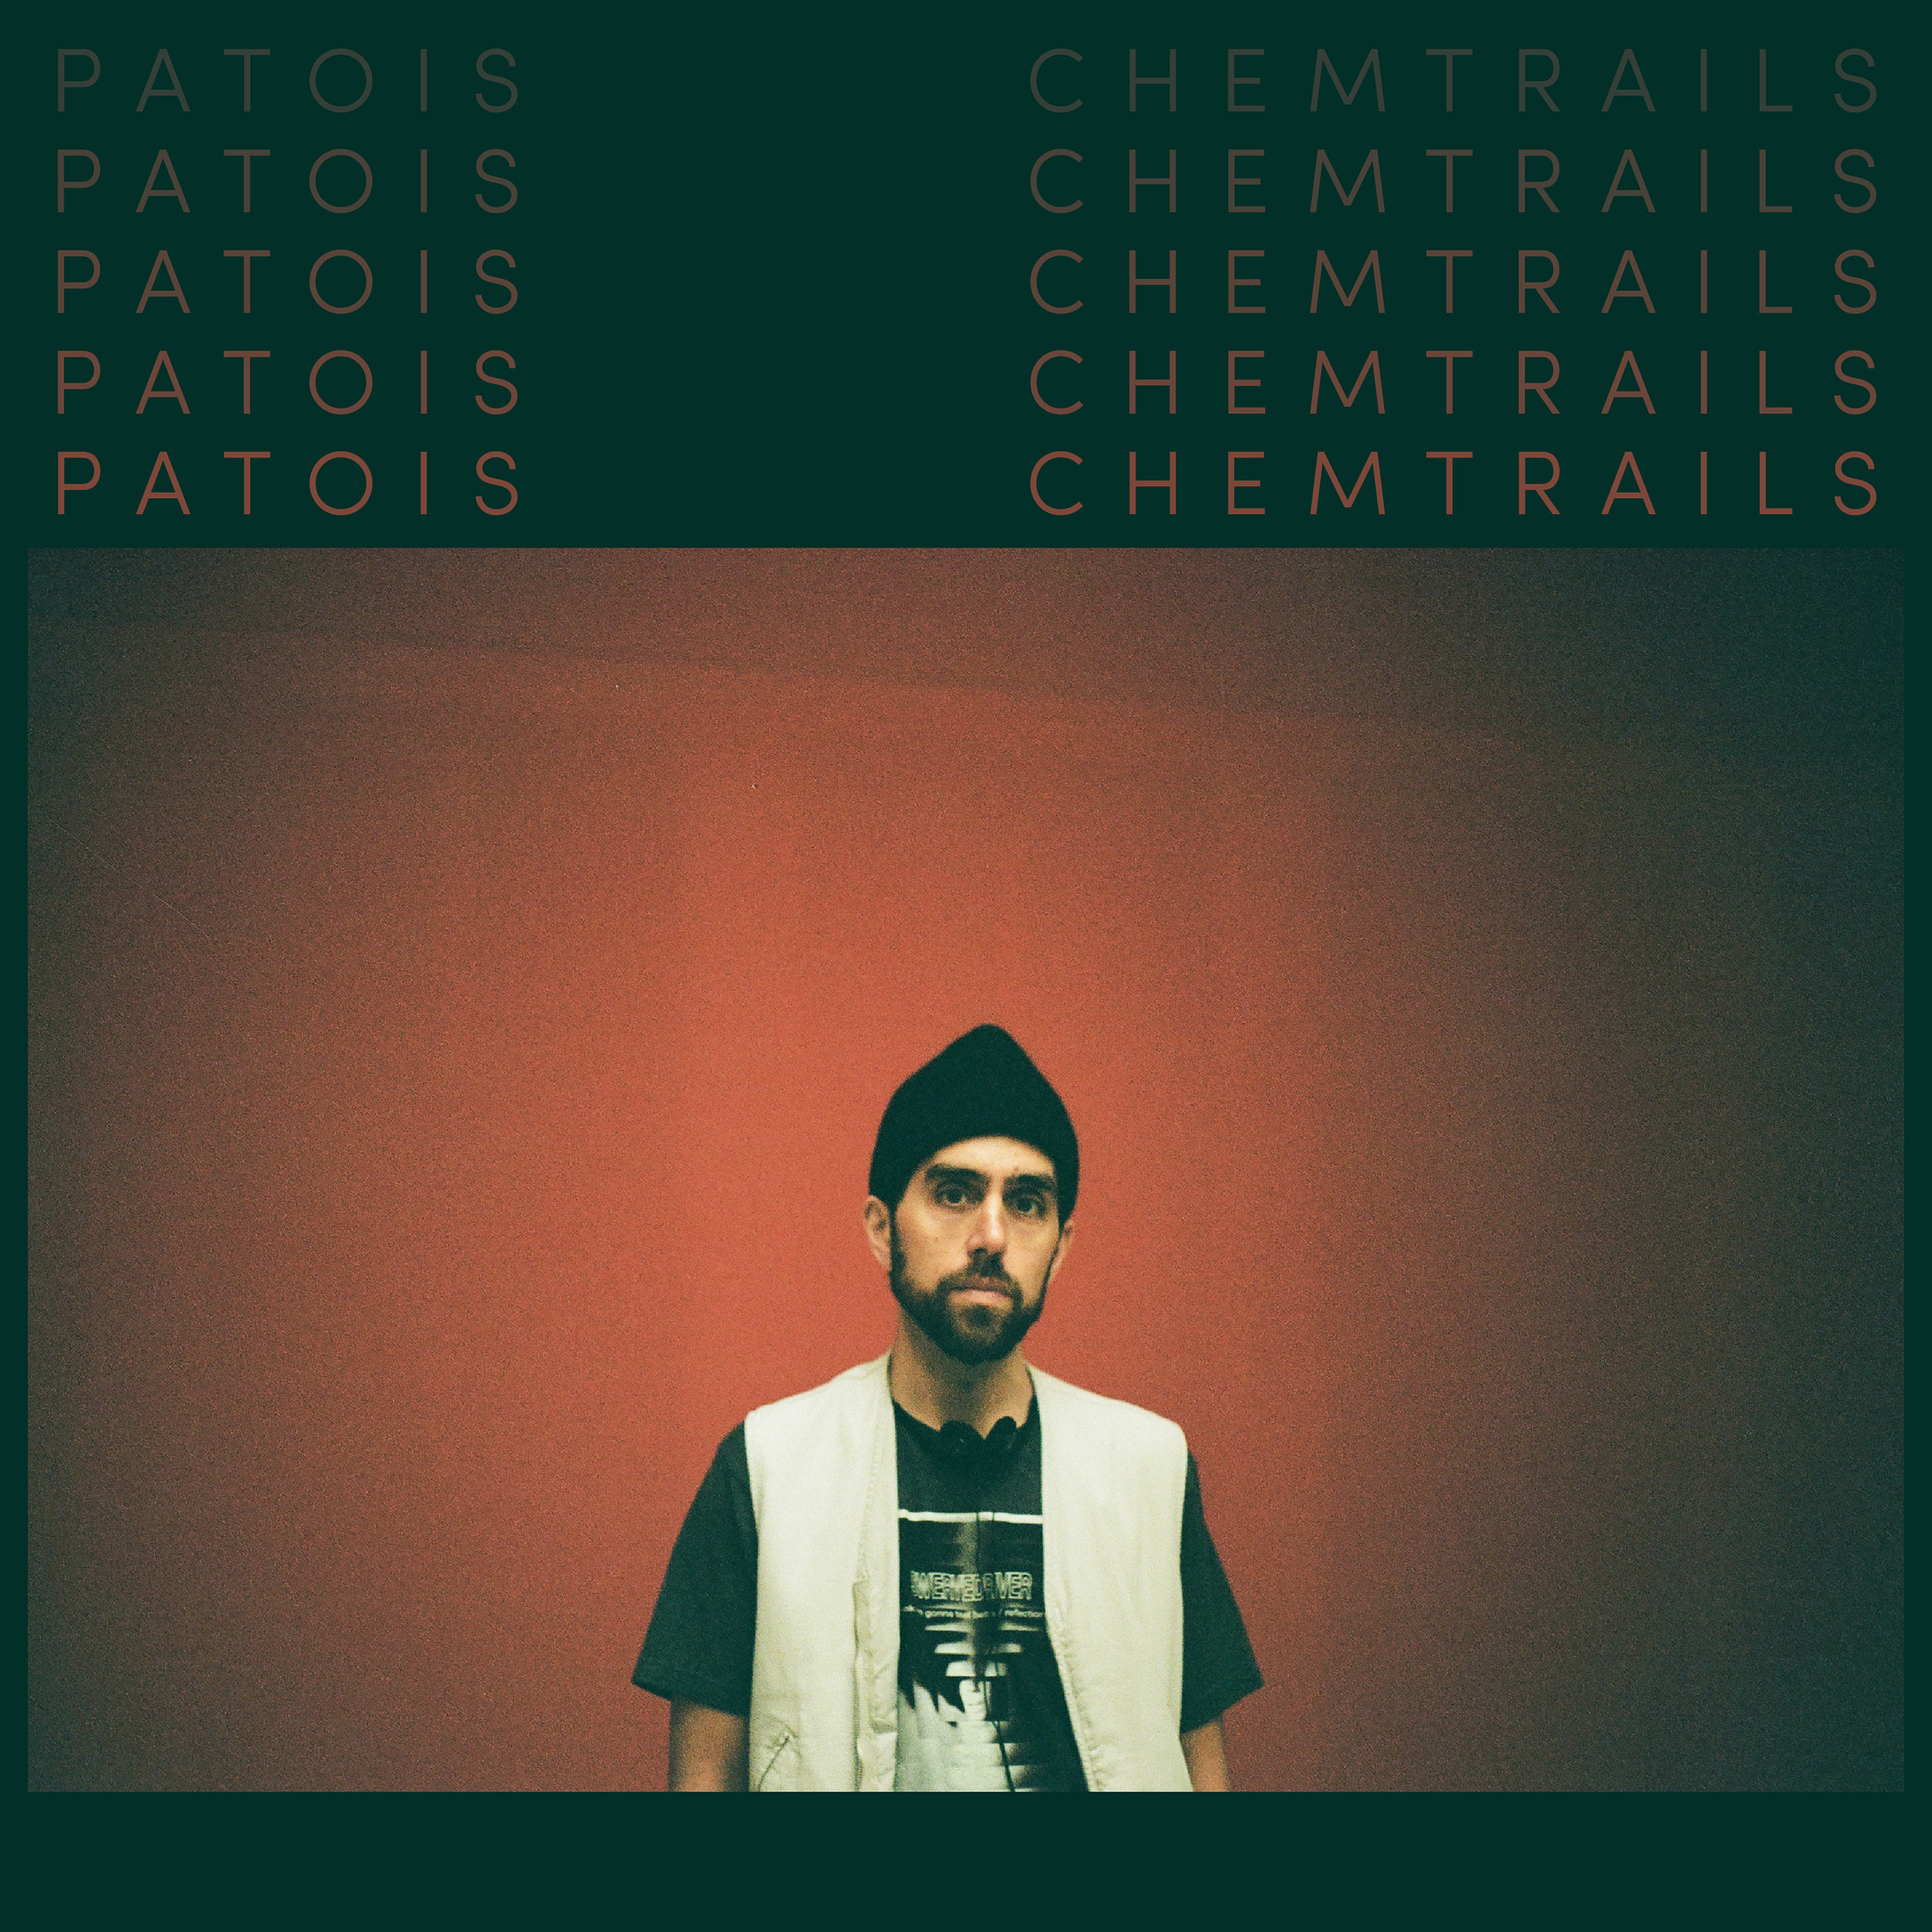 Patois Chemtrails - Square Cover.jpg